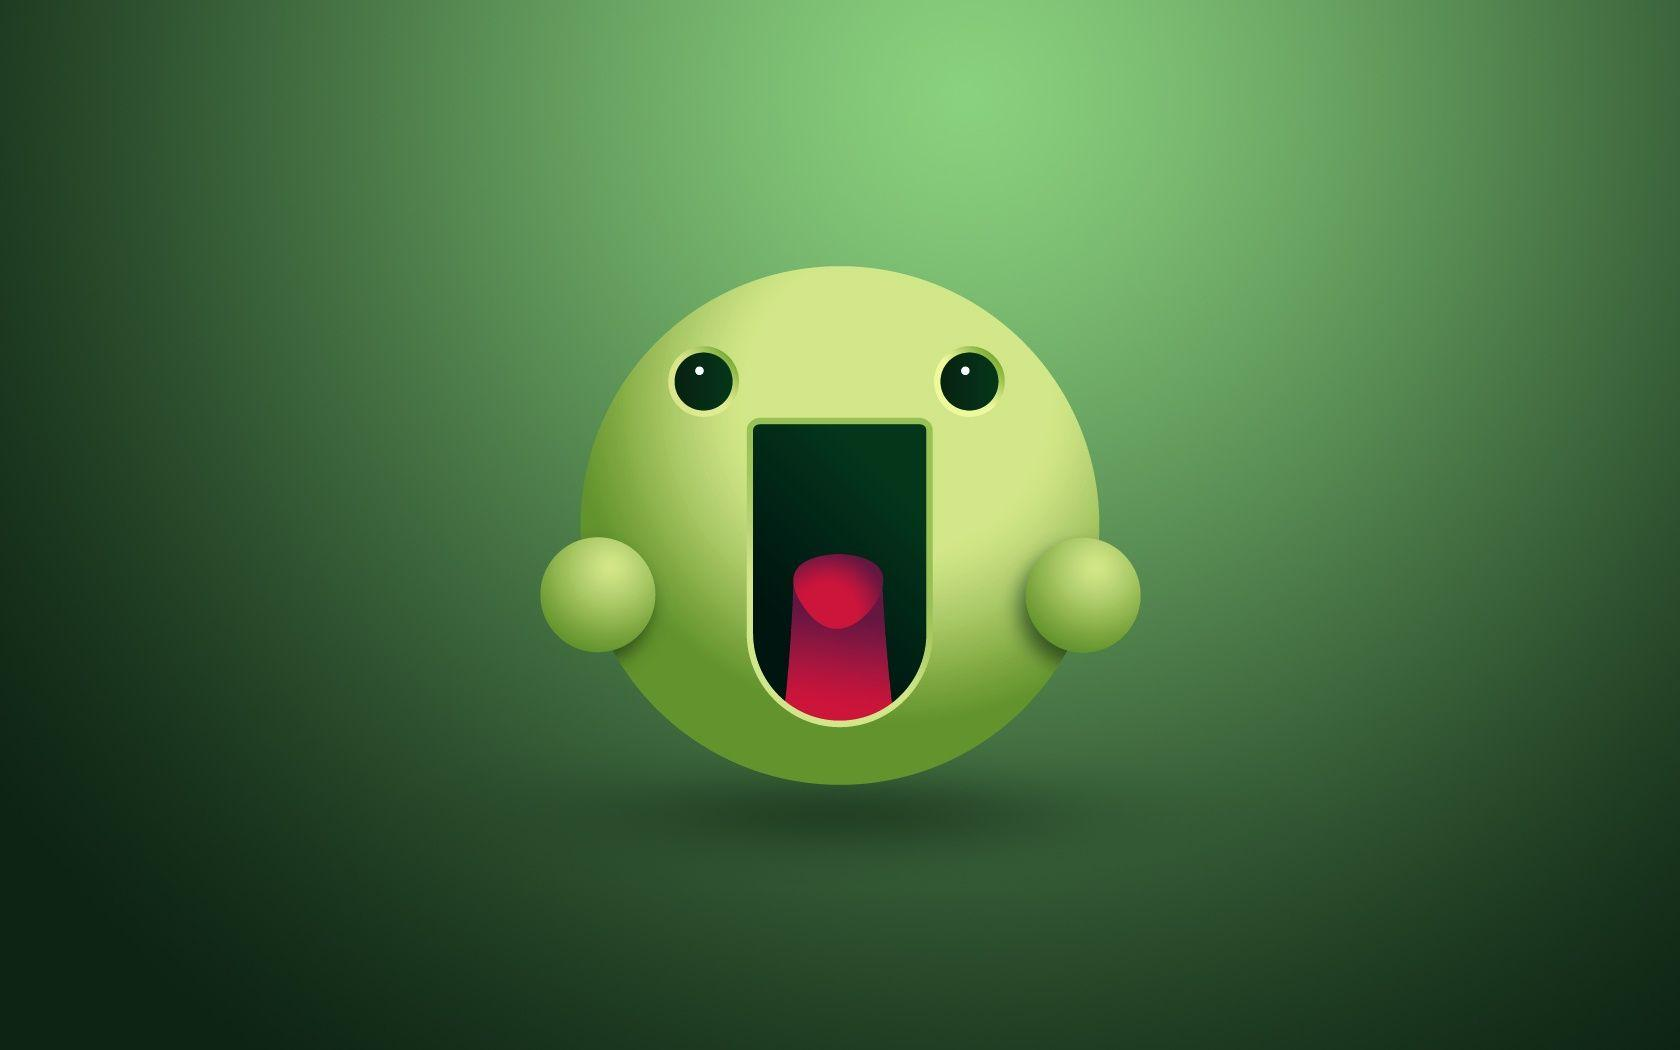 Cute Funny Backgrounds Wallpapers Cave Desktop Background: Cartoon Desktop Backgrounds